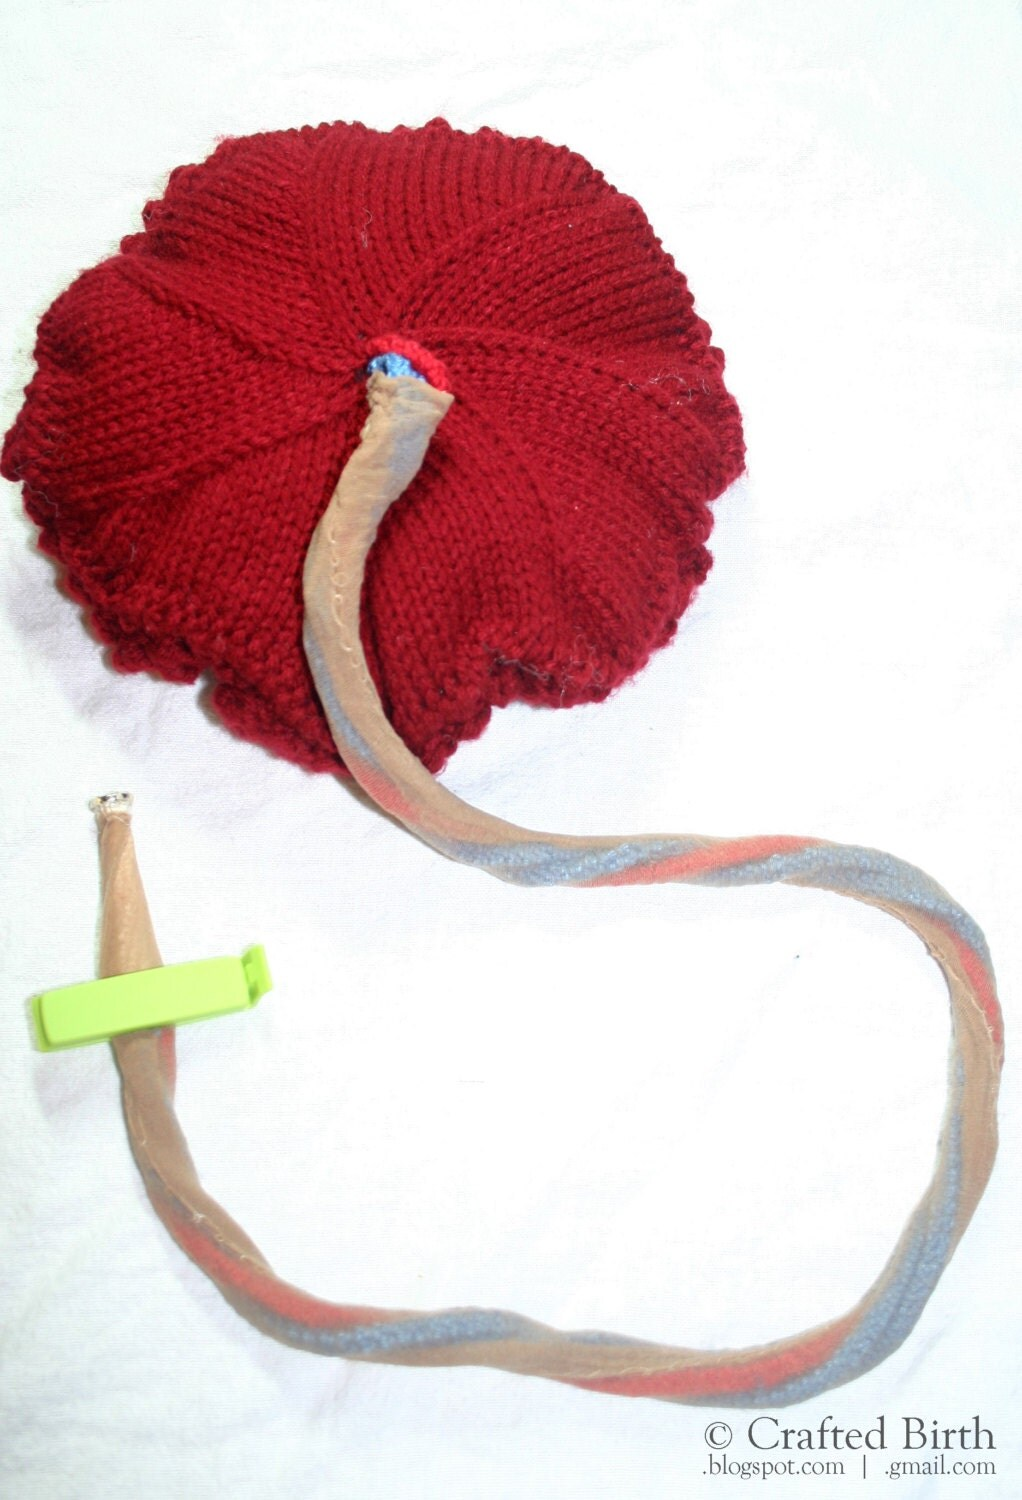 Knitting Pattern Umbilical Cord Hat : Pattern: Knitted Placenta and Umbilical Cord Hand-Made